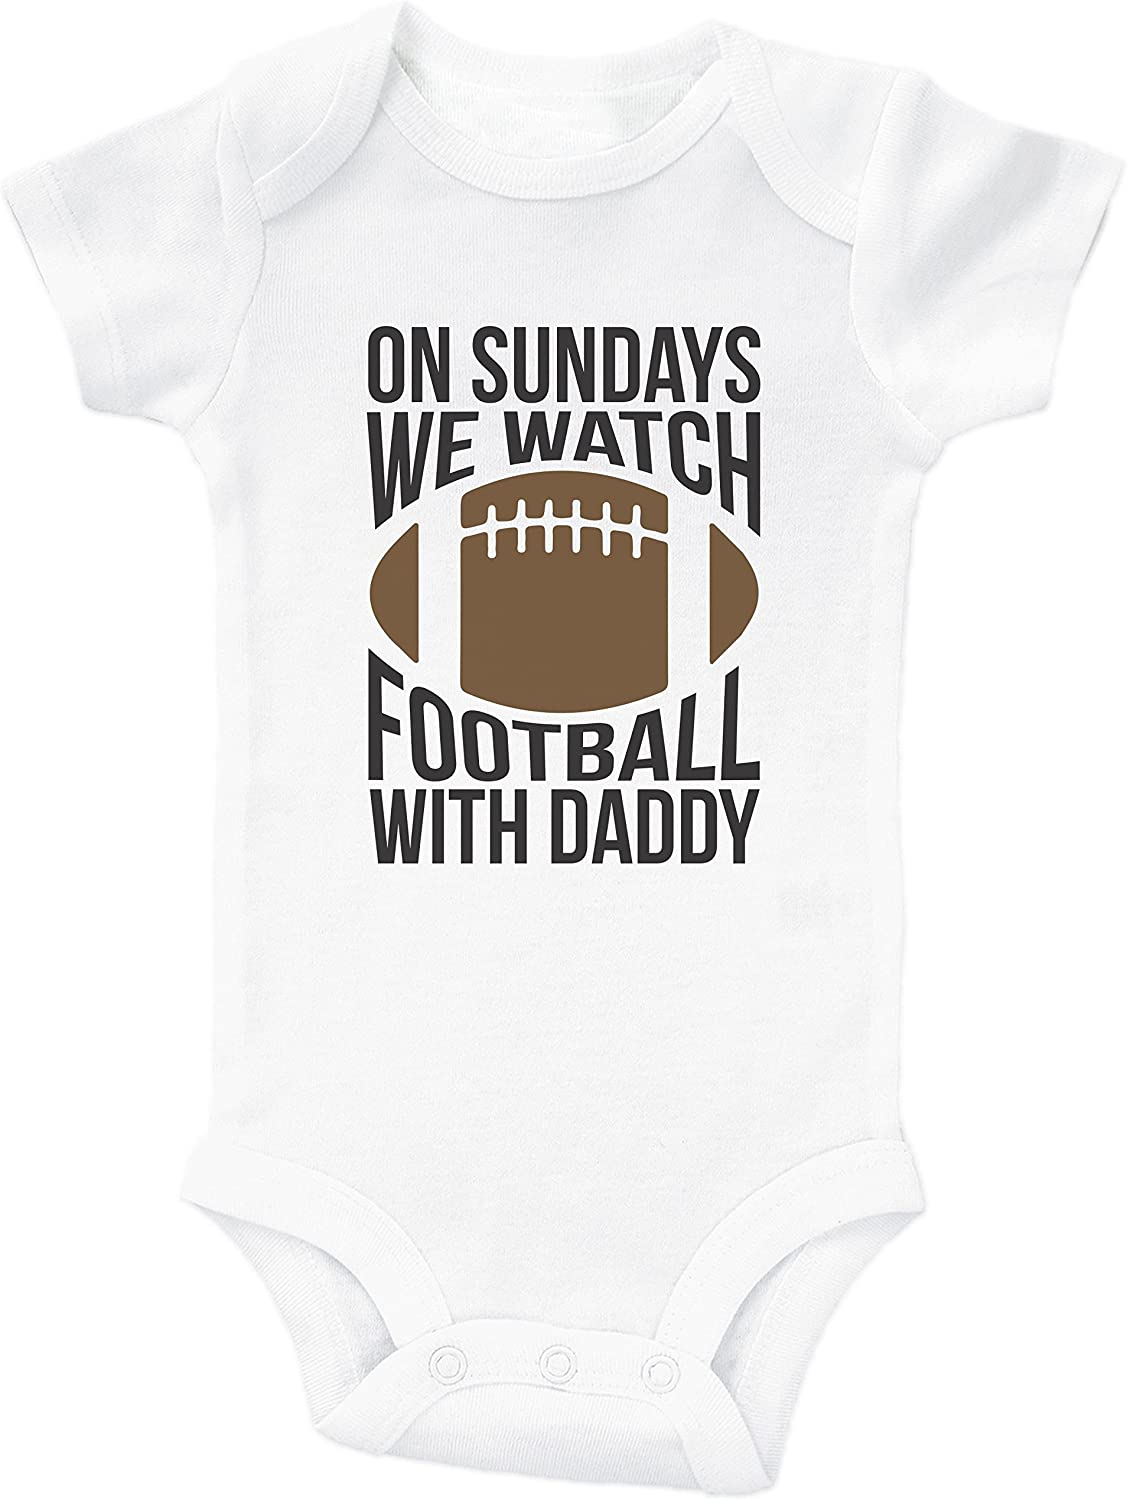 Dallas Cowboys Watching With Daddy Football Kids Toddler Long Sleeve T-Shirt